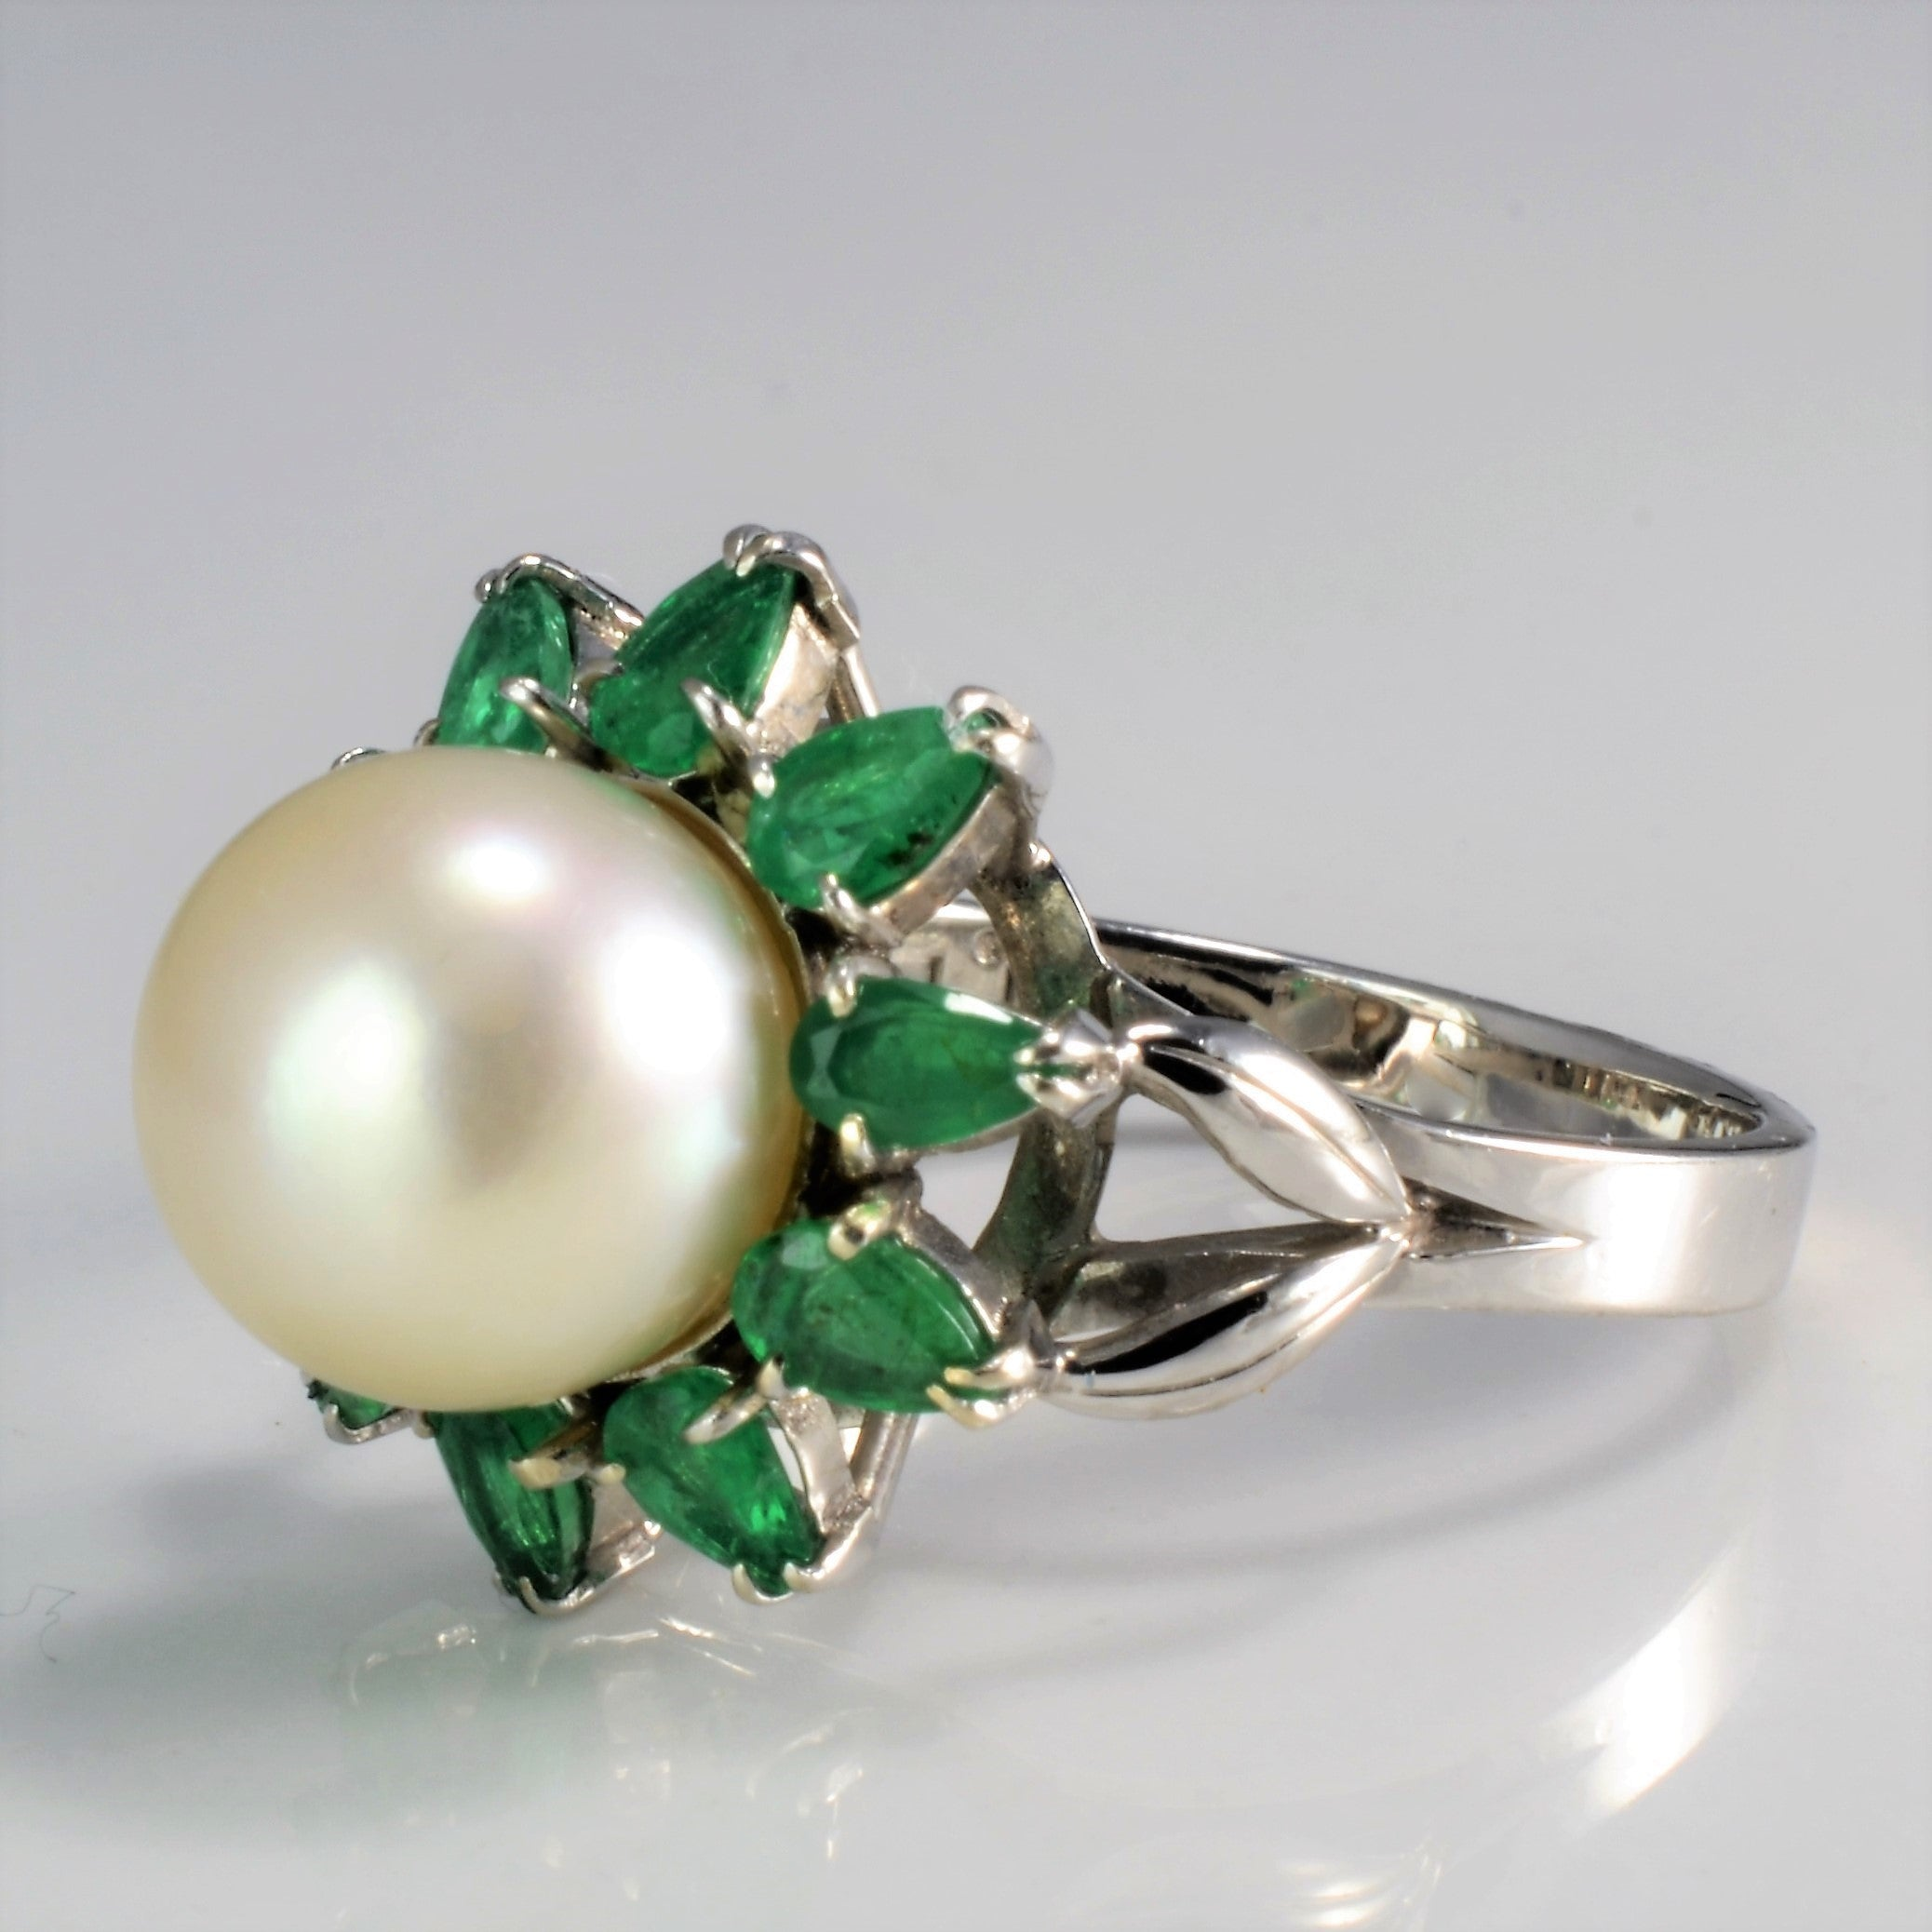 Flower Design Pearl & Emerald Cocktail Ring | SZ 7.25 |